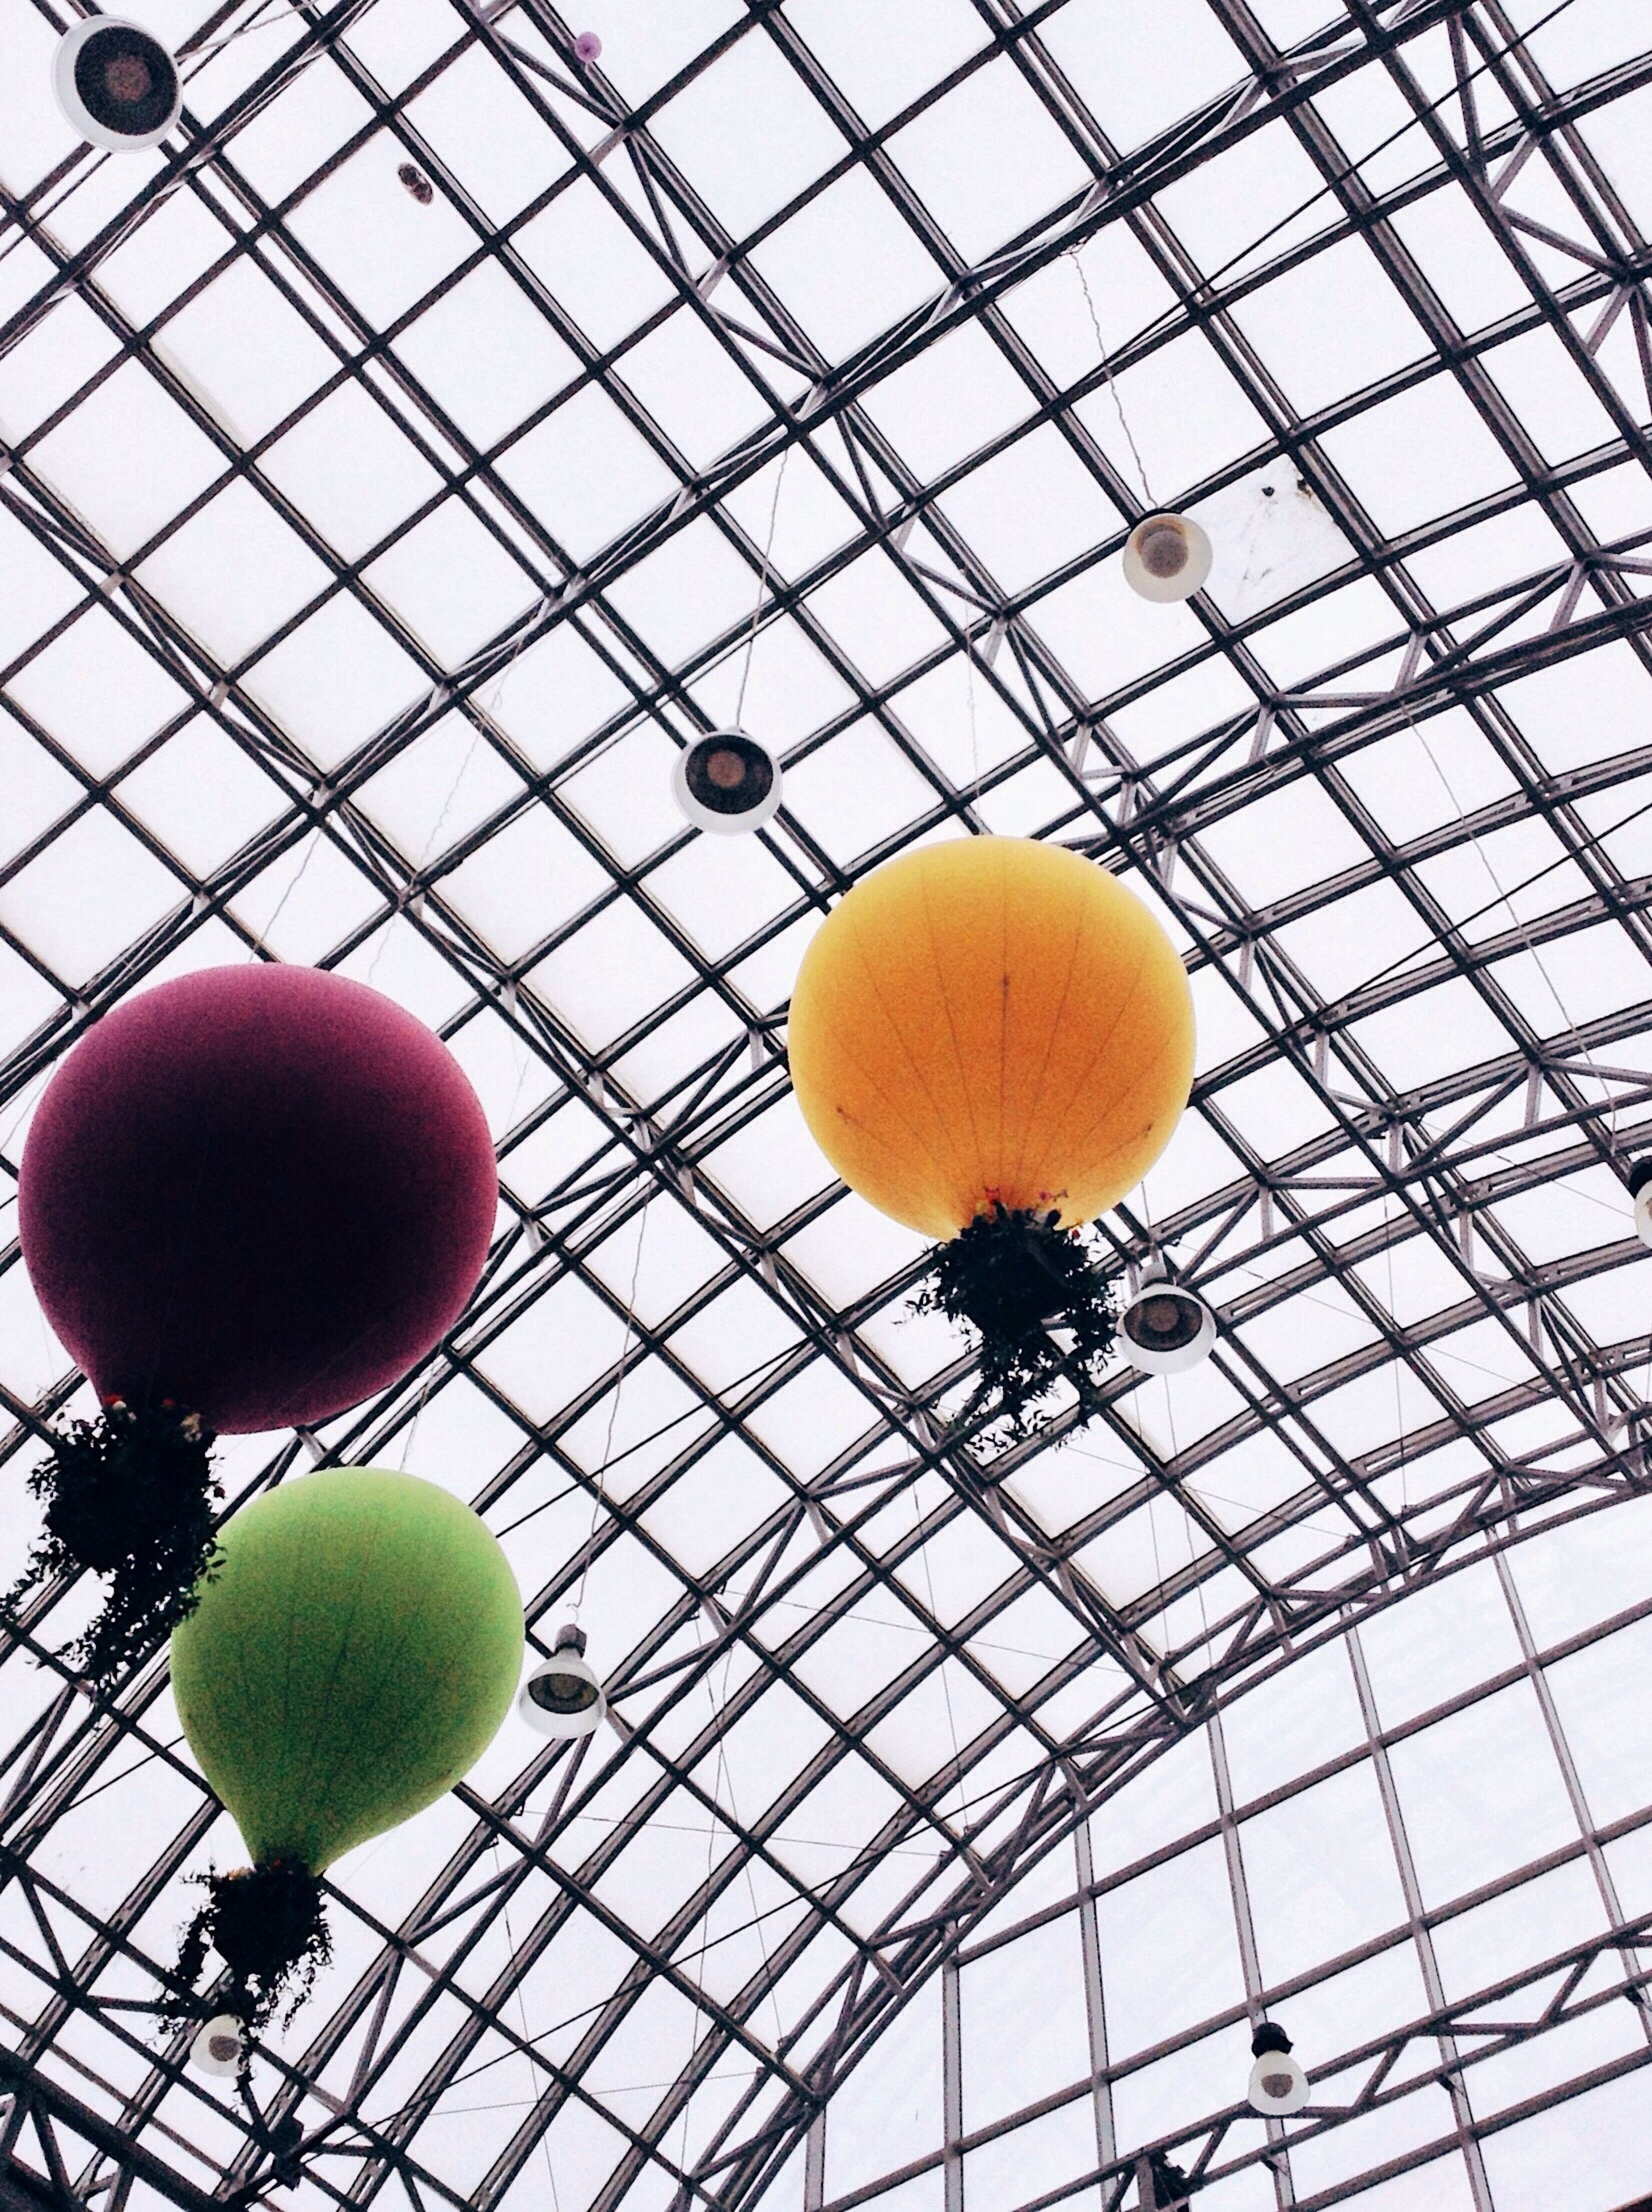 balloon, fruit, low angle view, yellow, hanging, no people, day, close-up, tree, outdoors, sky